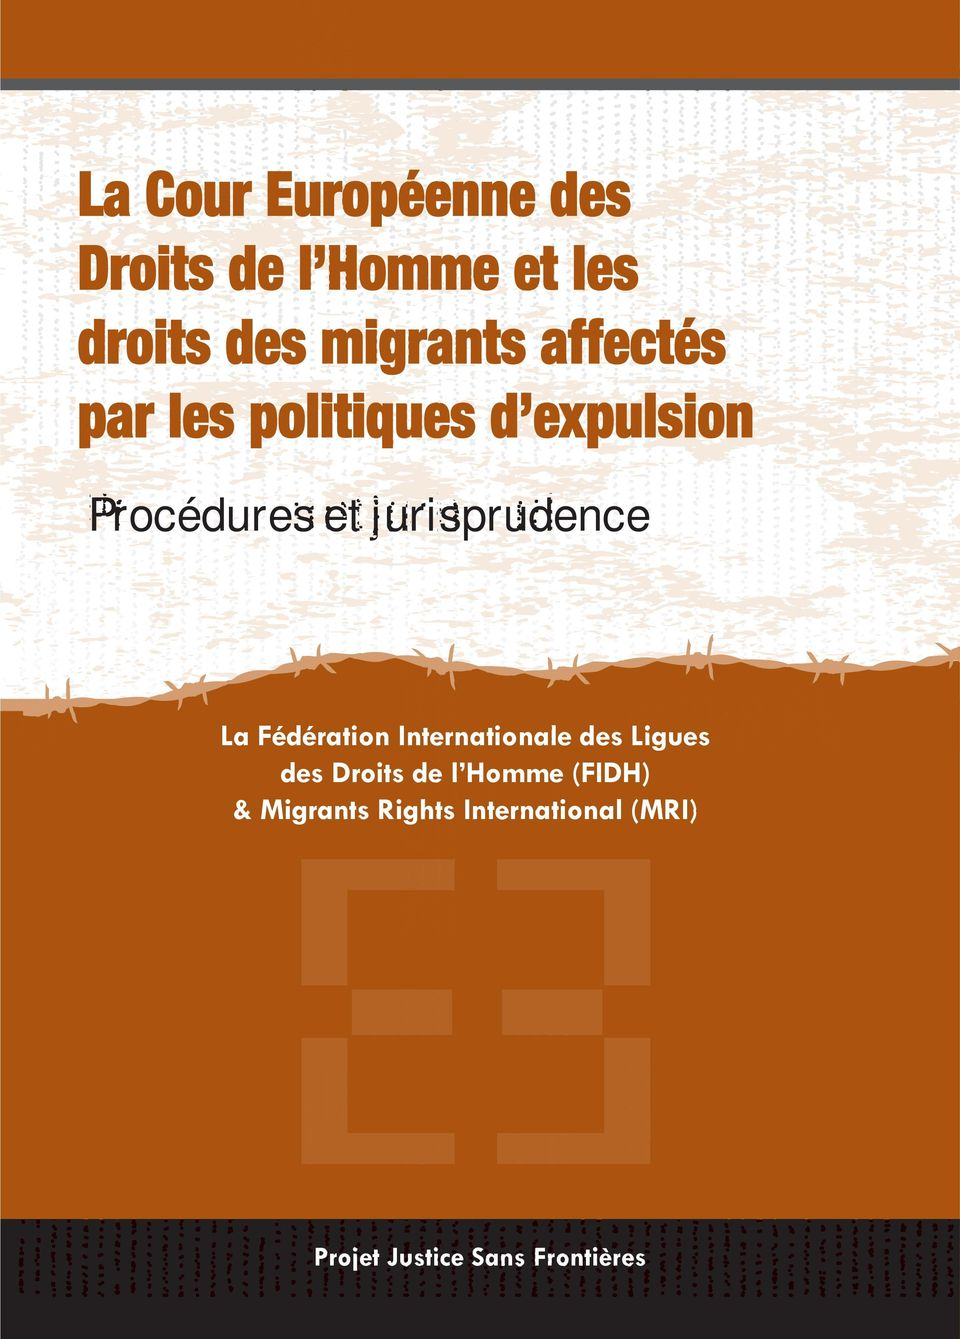 org Procédures et jurisprudence La Fédération Internationale des Ligues des Droits de l Homme (FIDH) & Migrants Rights International (MRI) Migrants Rights International (MRI) Open Society